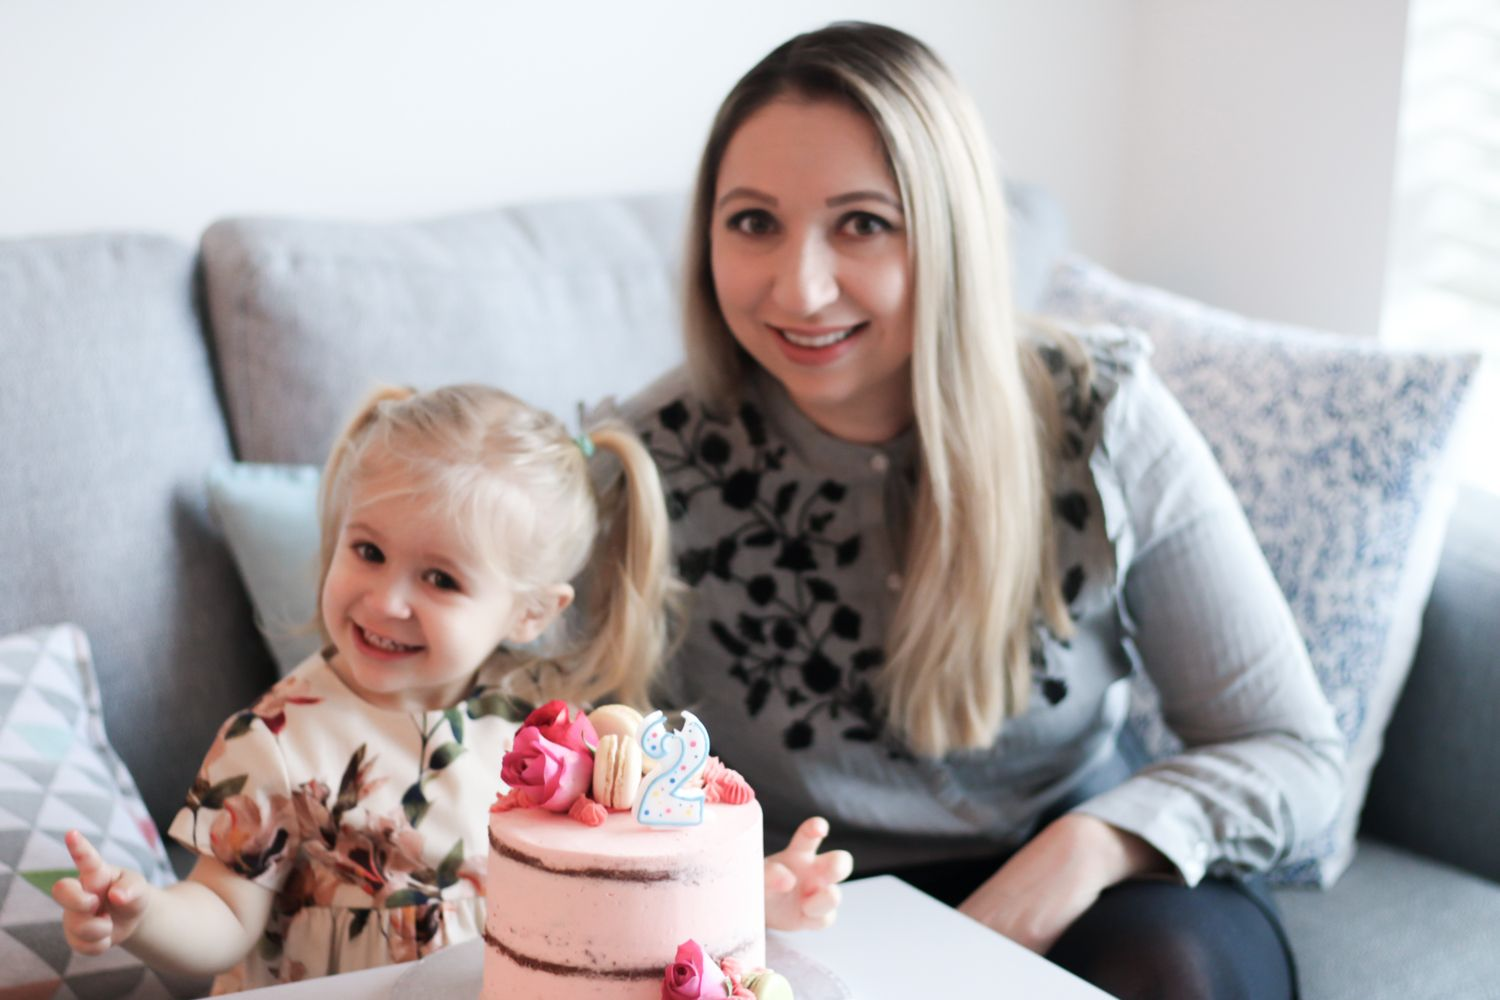 Sophia Turns Two!   10 Reasons Why My Second Year of Parenthood Was Awesome   https://www.yourbeauty.ie/2018/01/sophia-turns-two-10-reasons-why-my-second-year-of-parenthood-was-awesome/